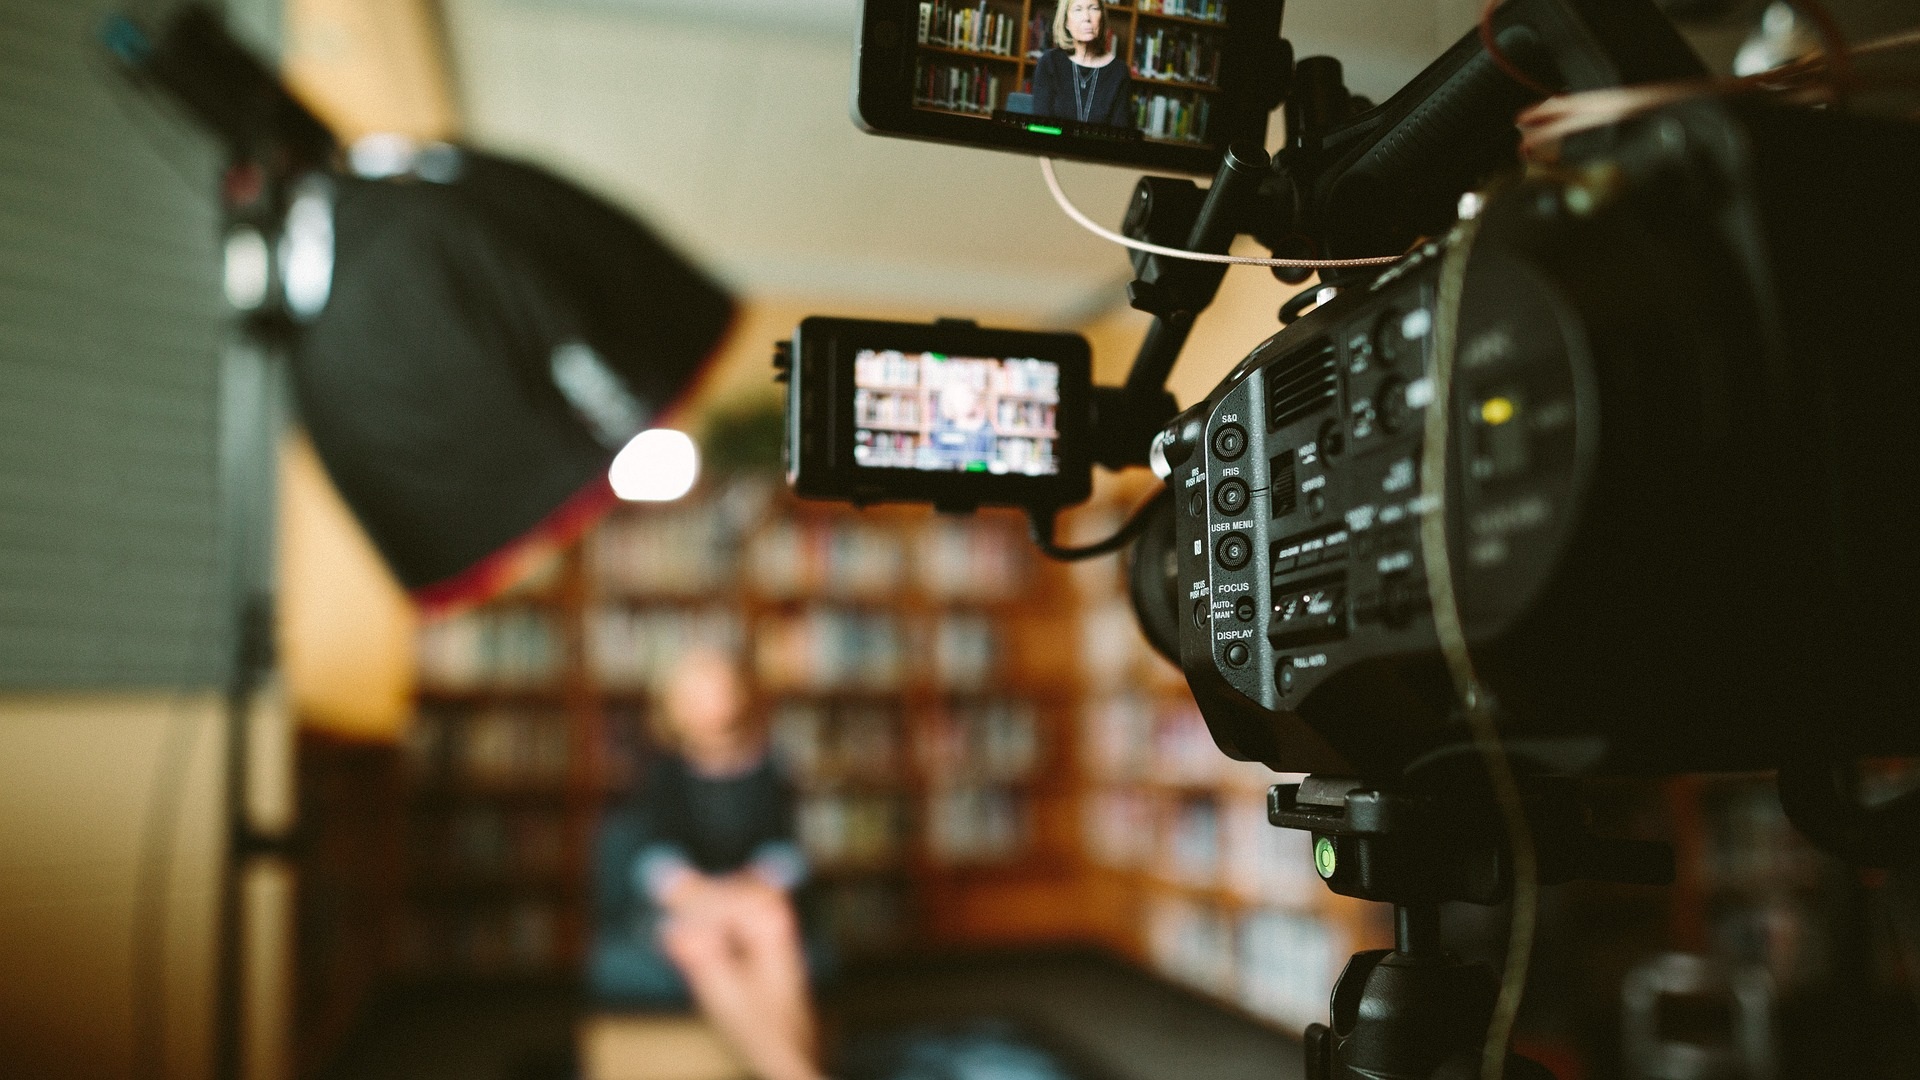 Video style corporate video